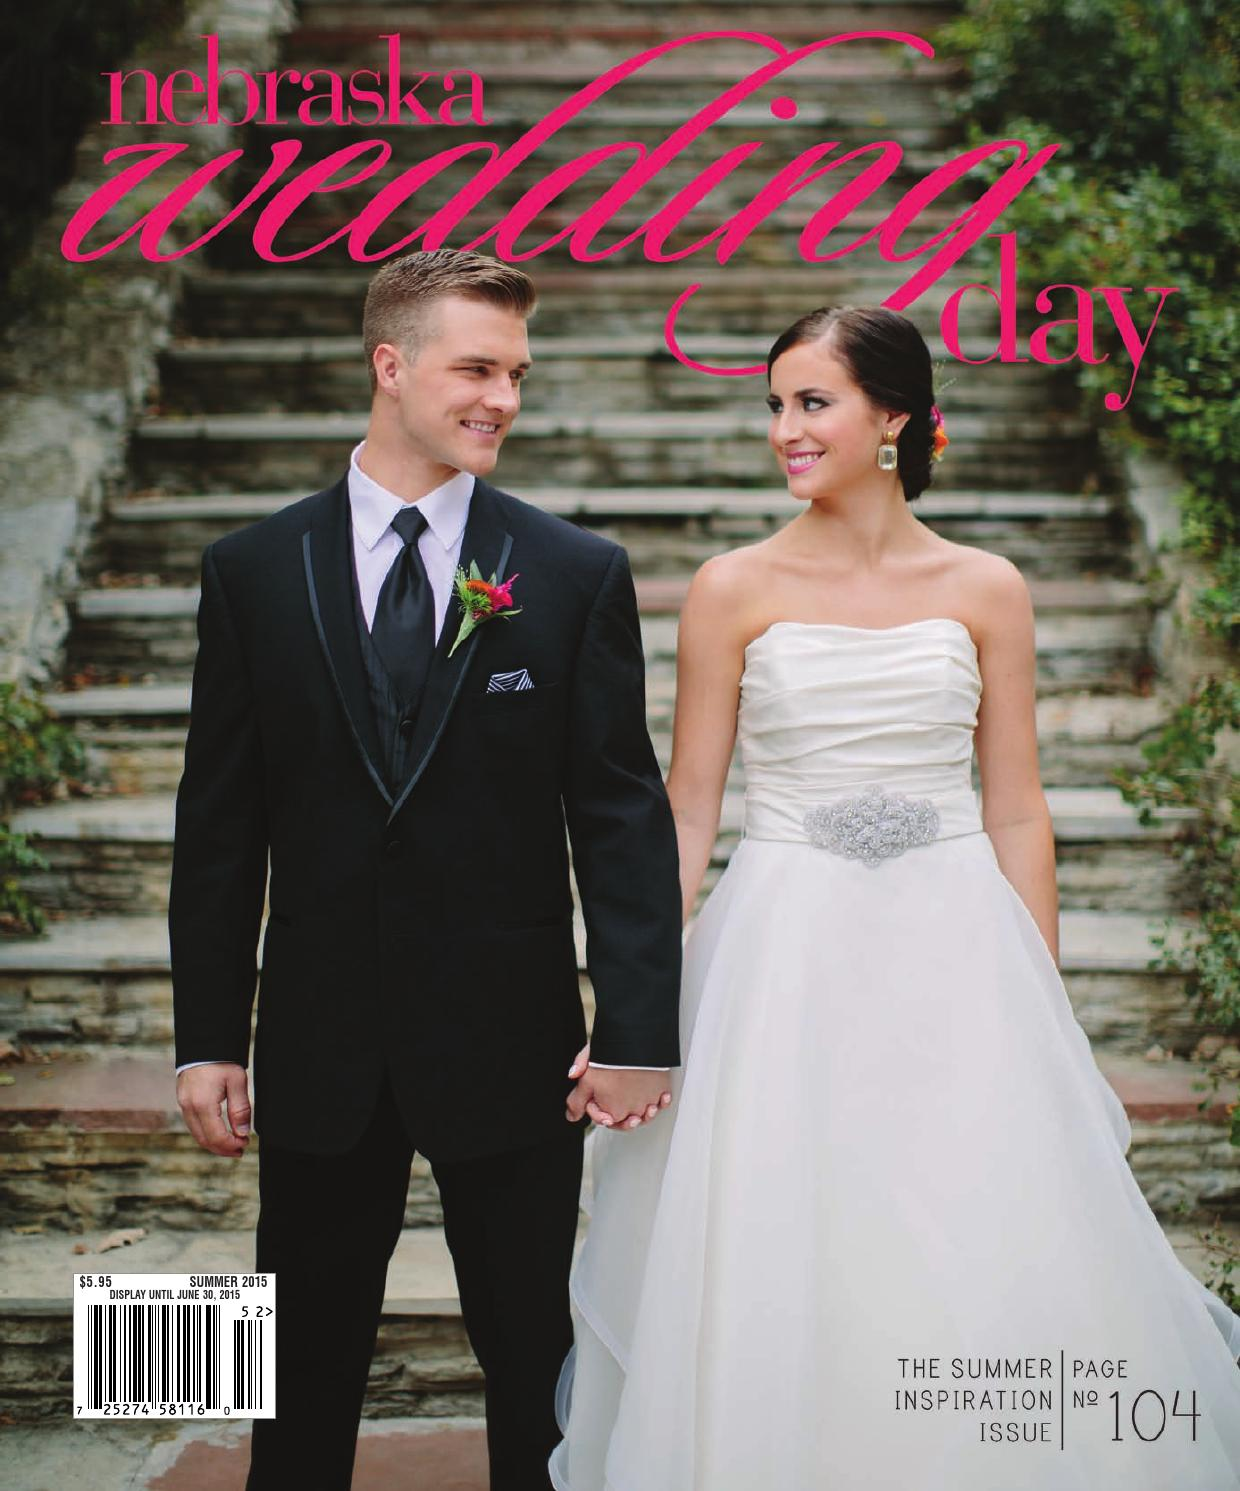 Nebraska Weddingday Summer 2015 By Nebraska Wedding Day Issuu